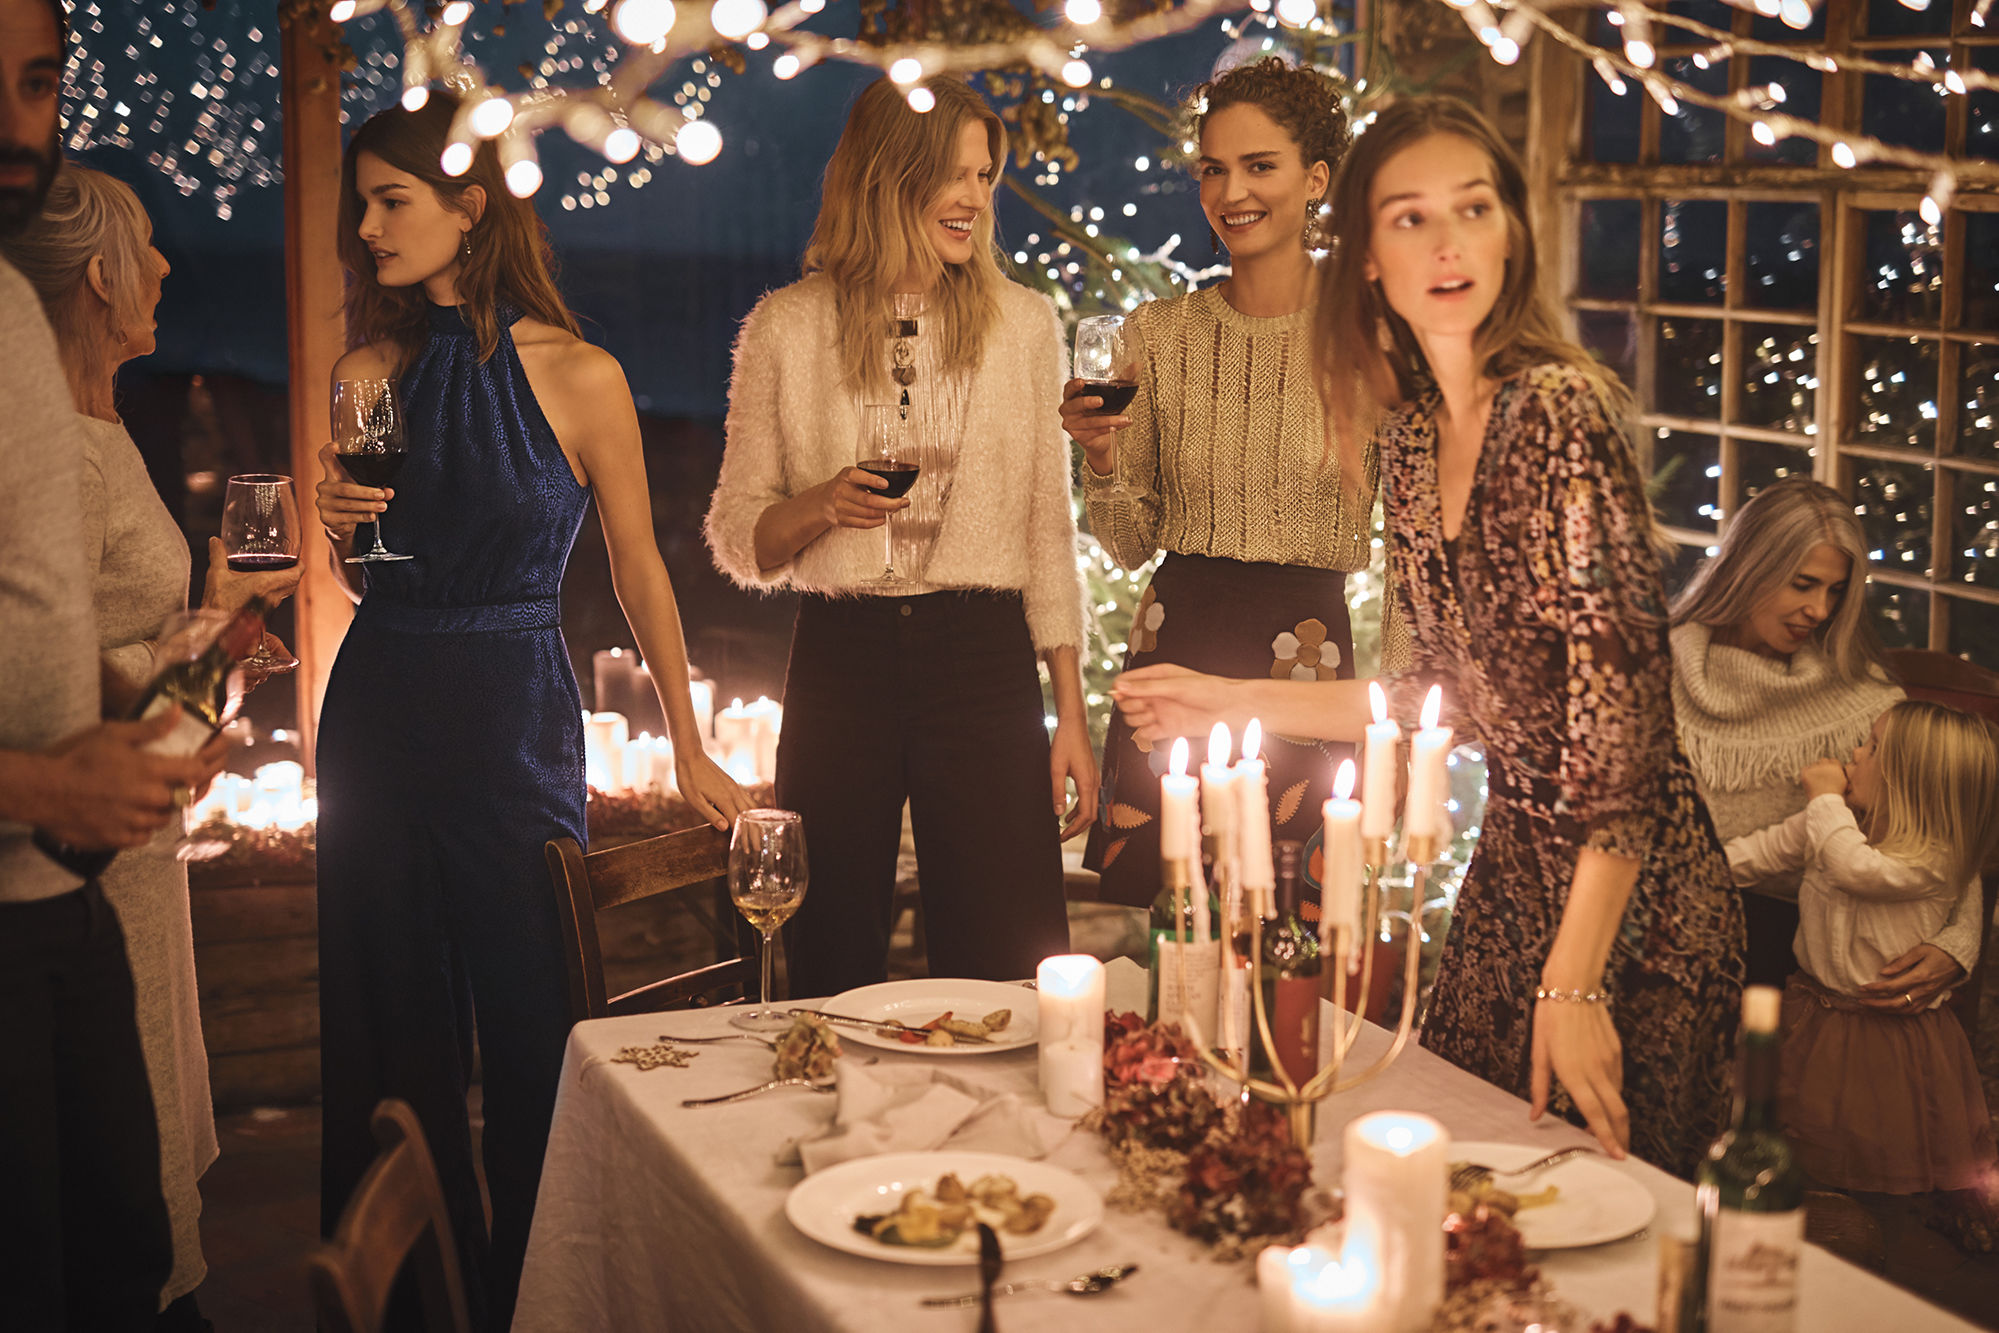 LS PRODUCTIONS FOR ANTHROPOLOGIE DECEMBER 2016